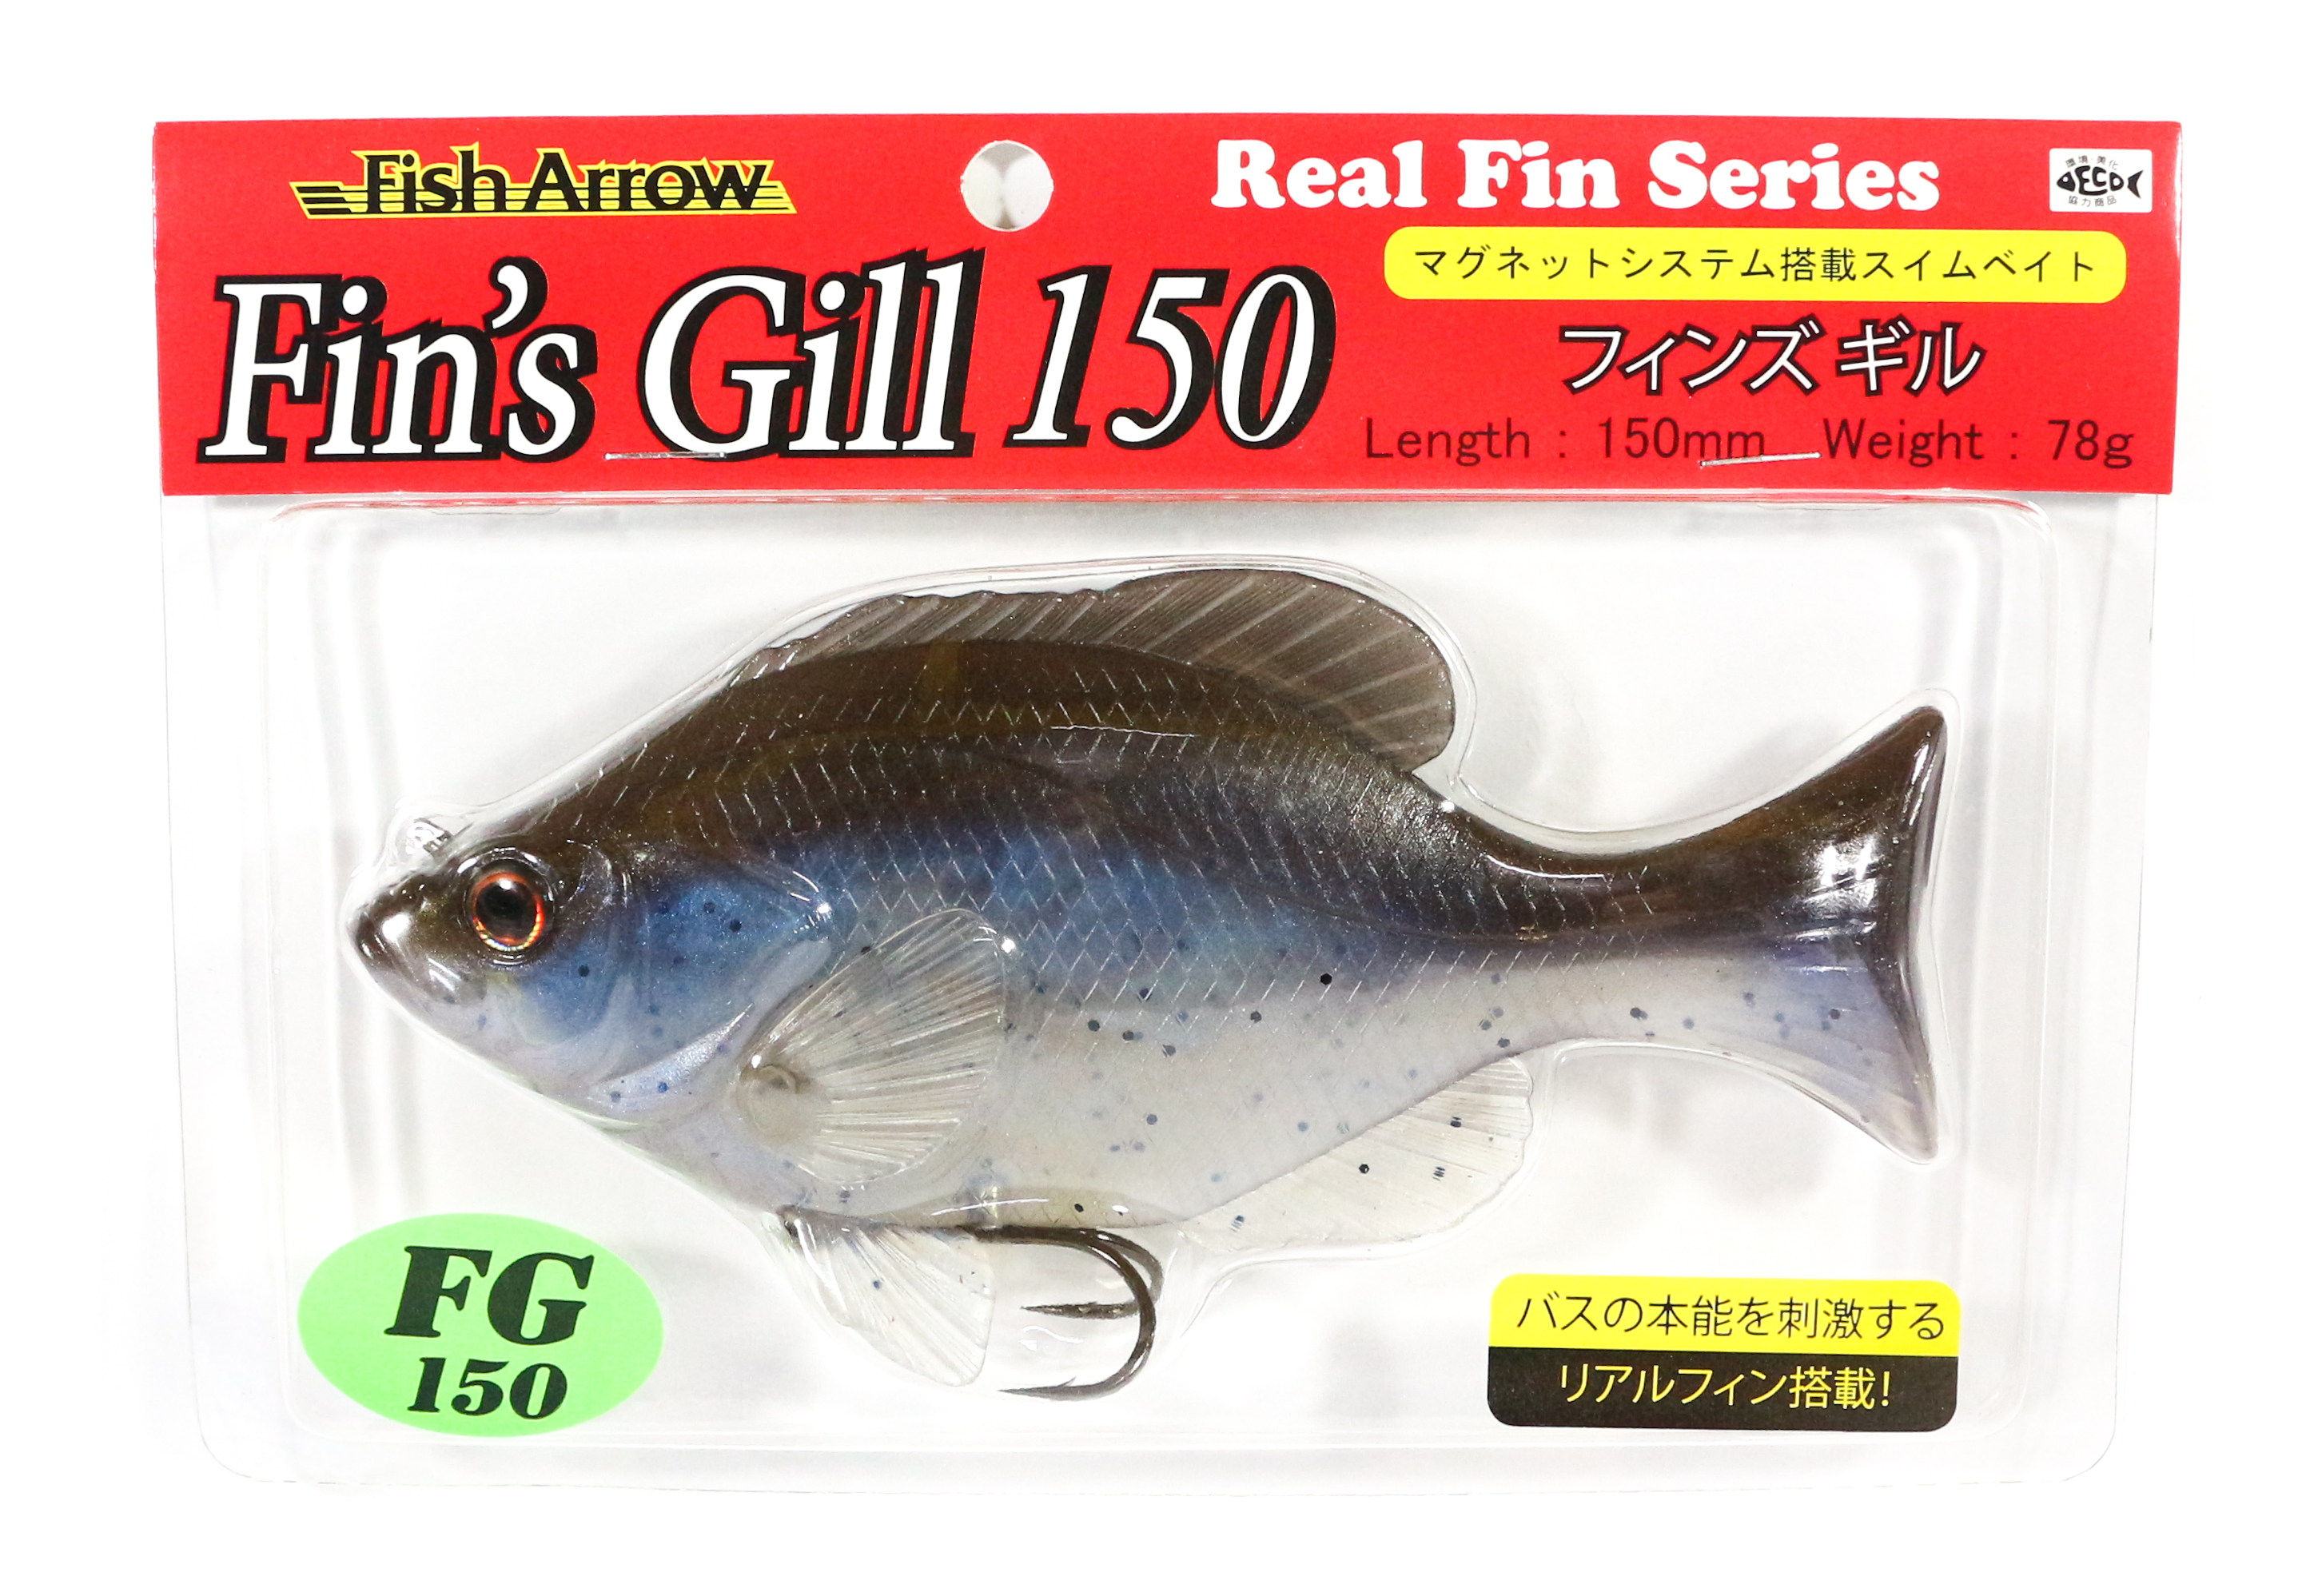 Fish Arrow Soft Lure Fin's Gill 150 78 gram 150 mm Sinking Lure #02 (9518)